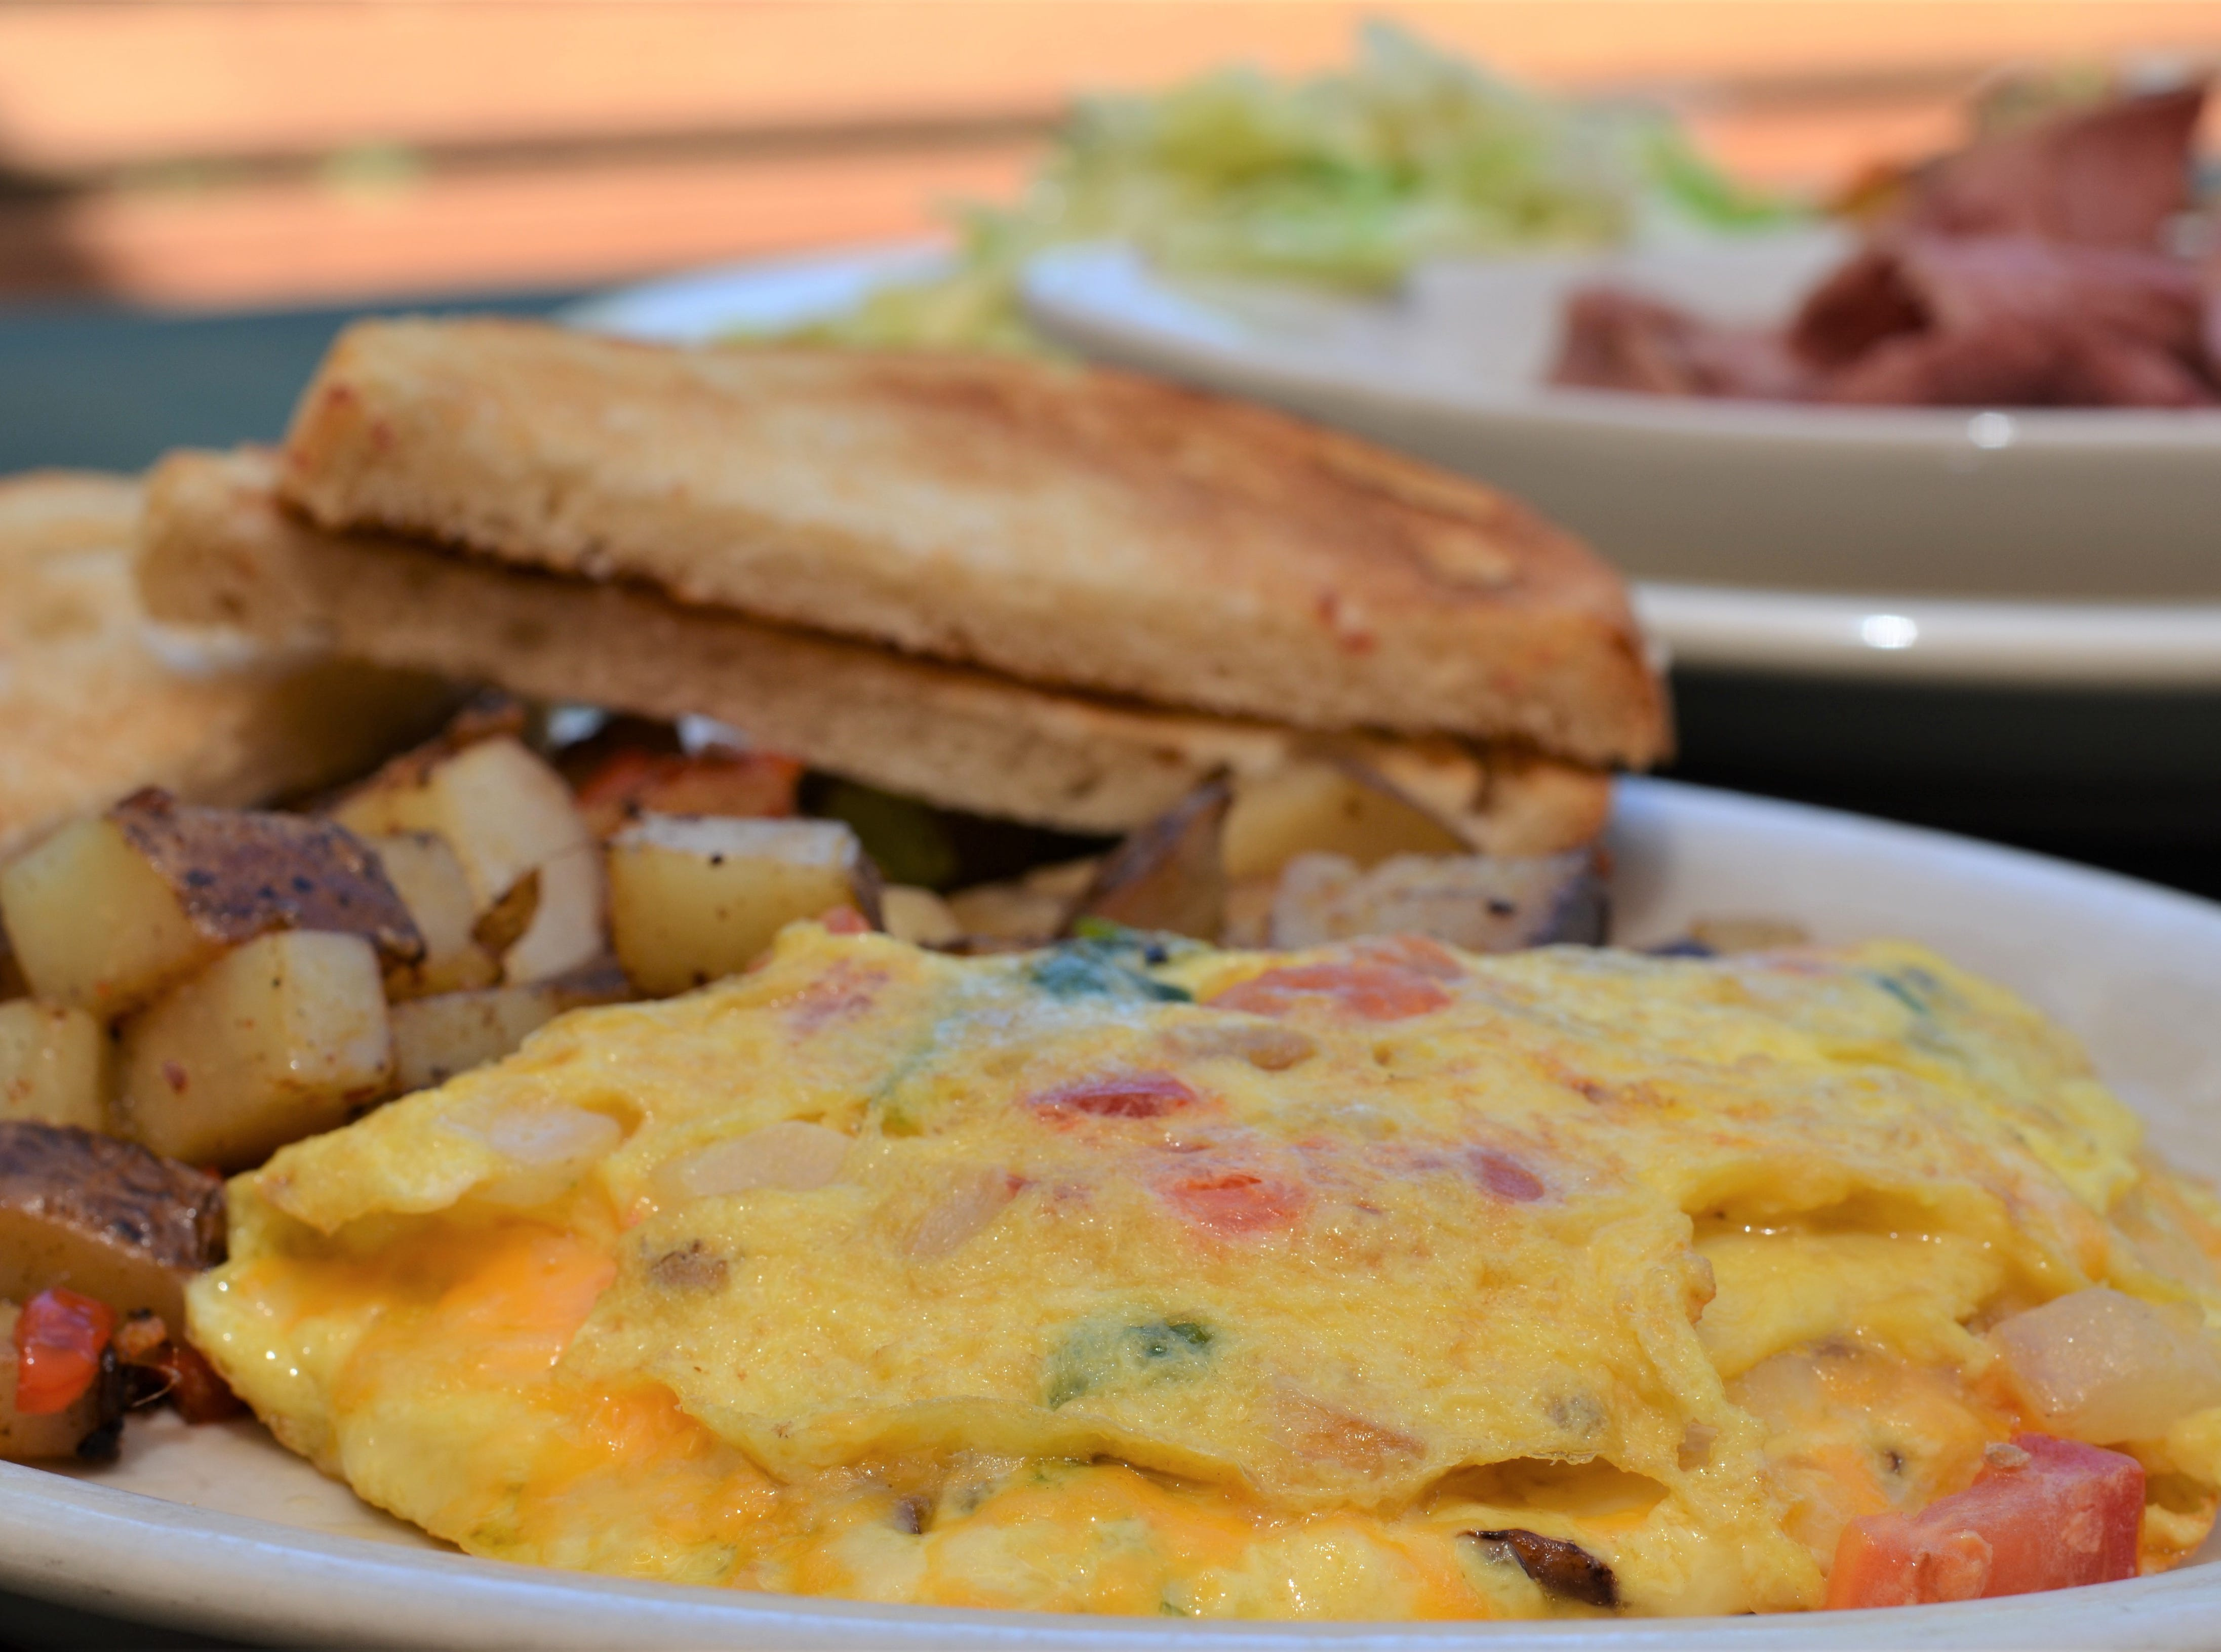 PADRE MURPHY'S | A buffet ($24.50, $7.99 for ages 12 and younger) will feature made-to-order omelets, banana-stuffed French toast, cheese, hot side dishes, baked ham, chicken Marsala, blackened salmon and homemade desserts. Reservations required. DETAILS: 4338 W. Bell Road, Glendale, 602-547-9406, padremurphys.com.